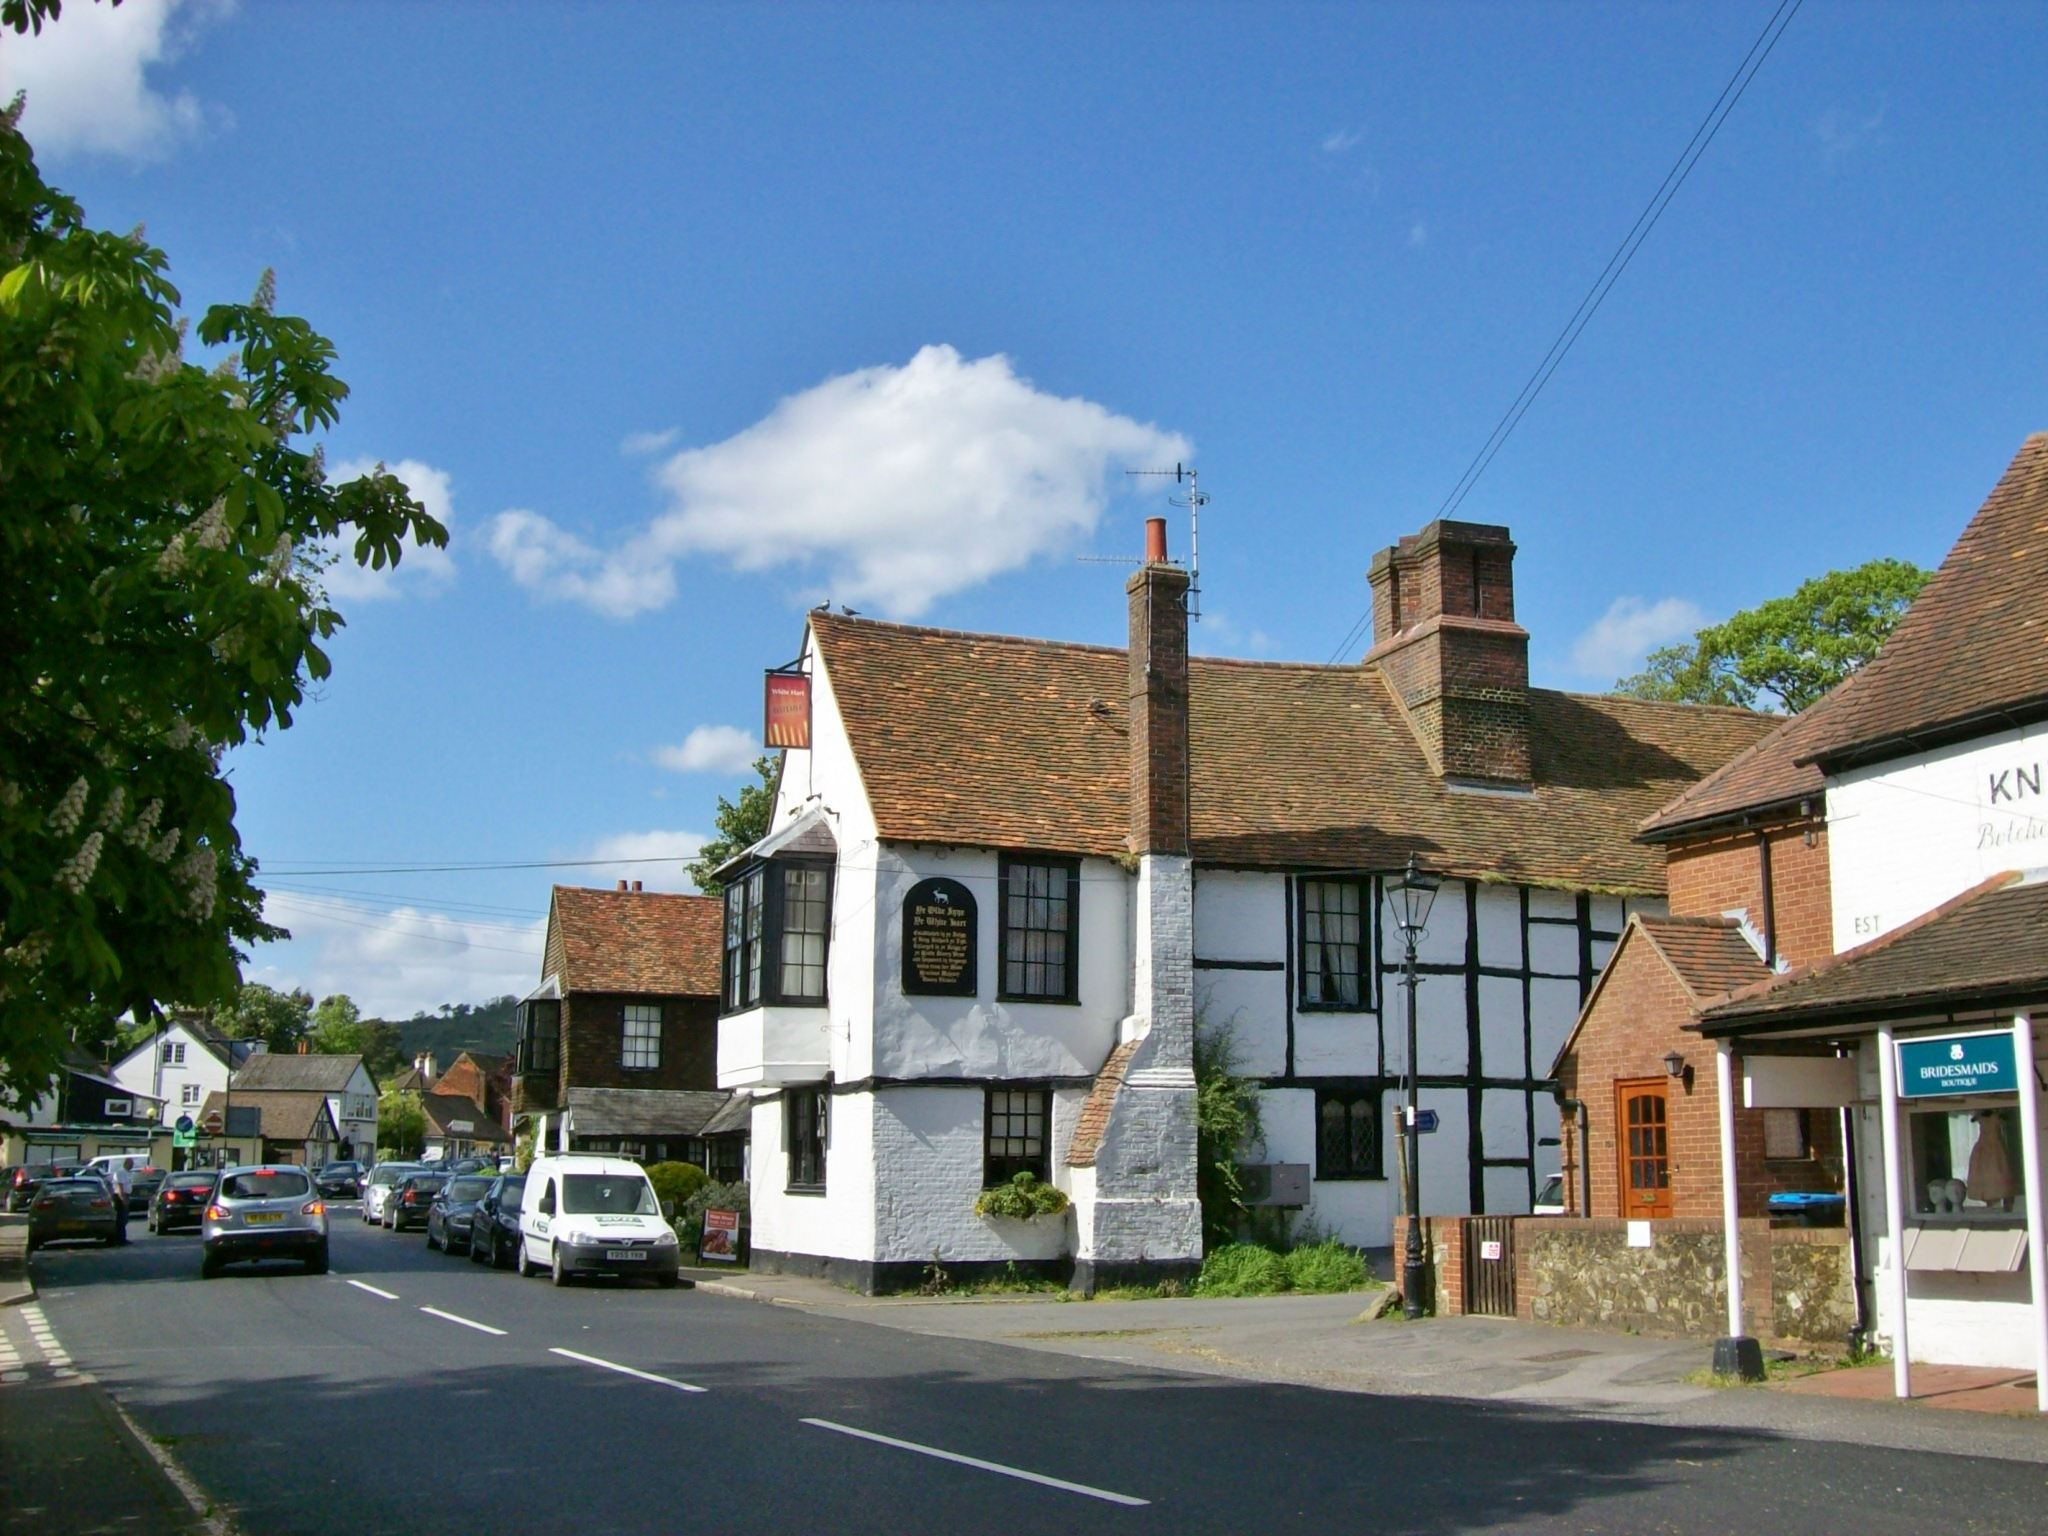 File:White Hart, Godstone.JPG - Wikimedia Commons